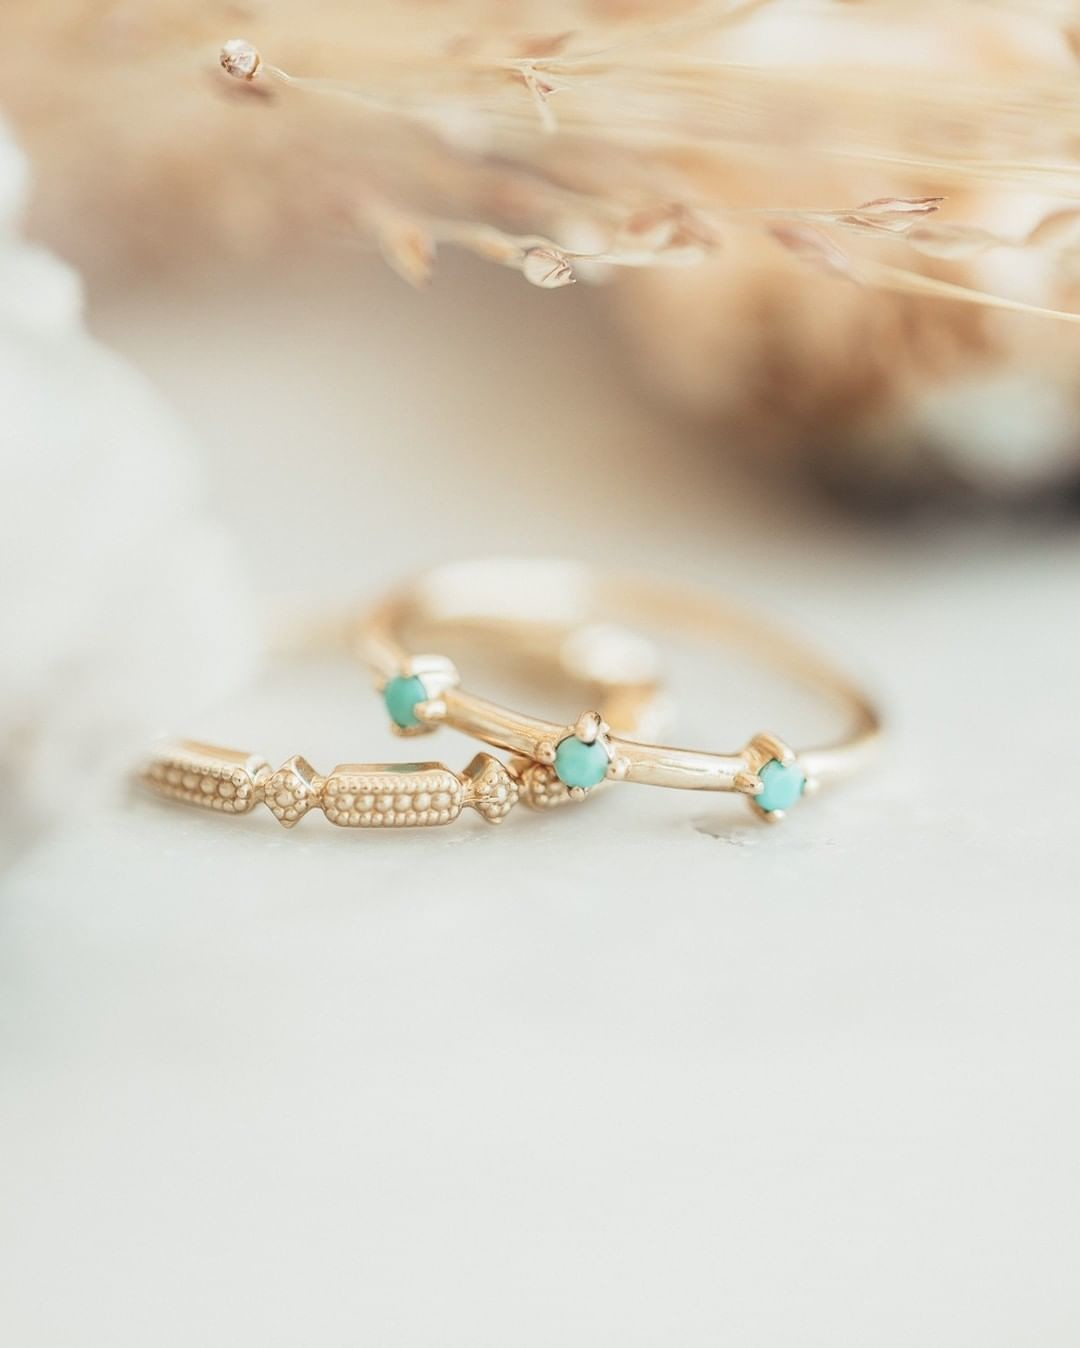 Swooning over this stack! Our turquoise three stone ring in yellow gold pairs perfectly with this vintage inspired milgrain band. Come